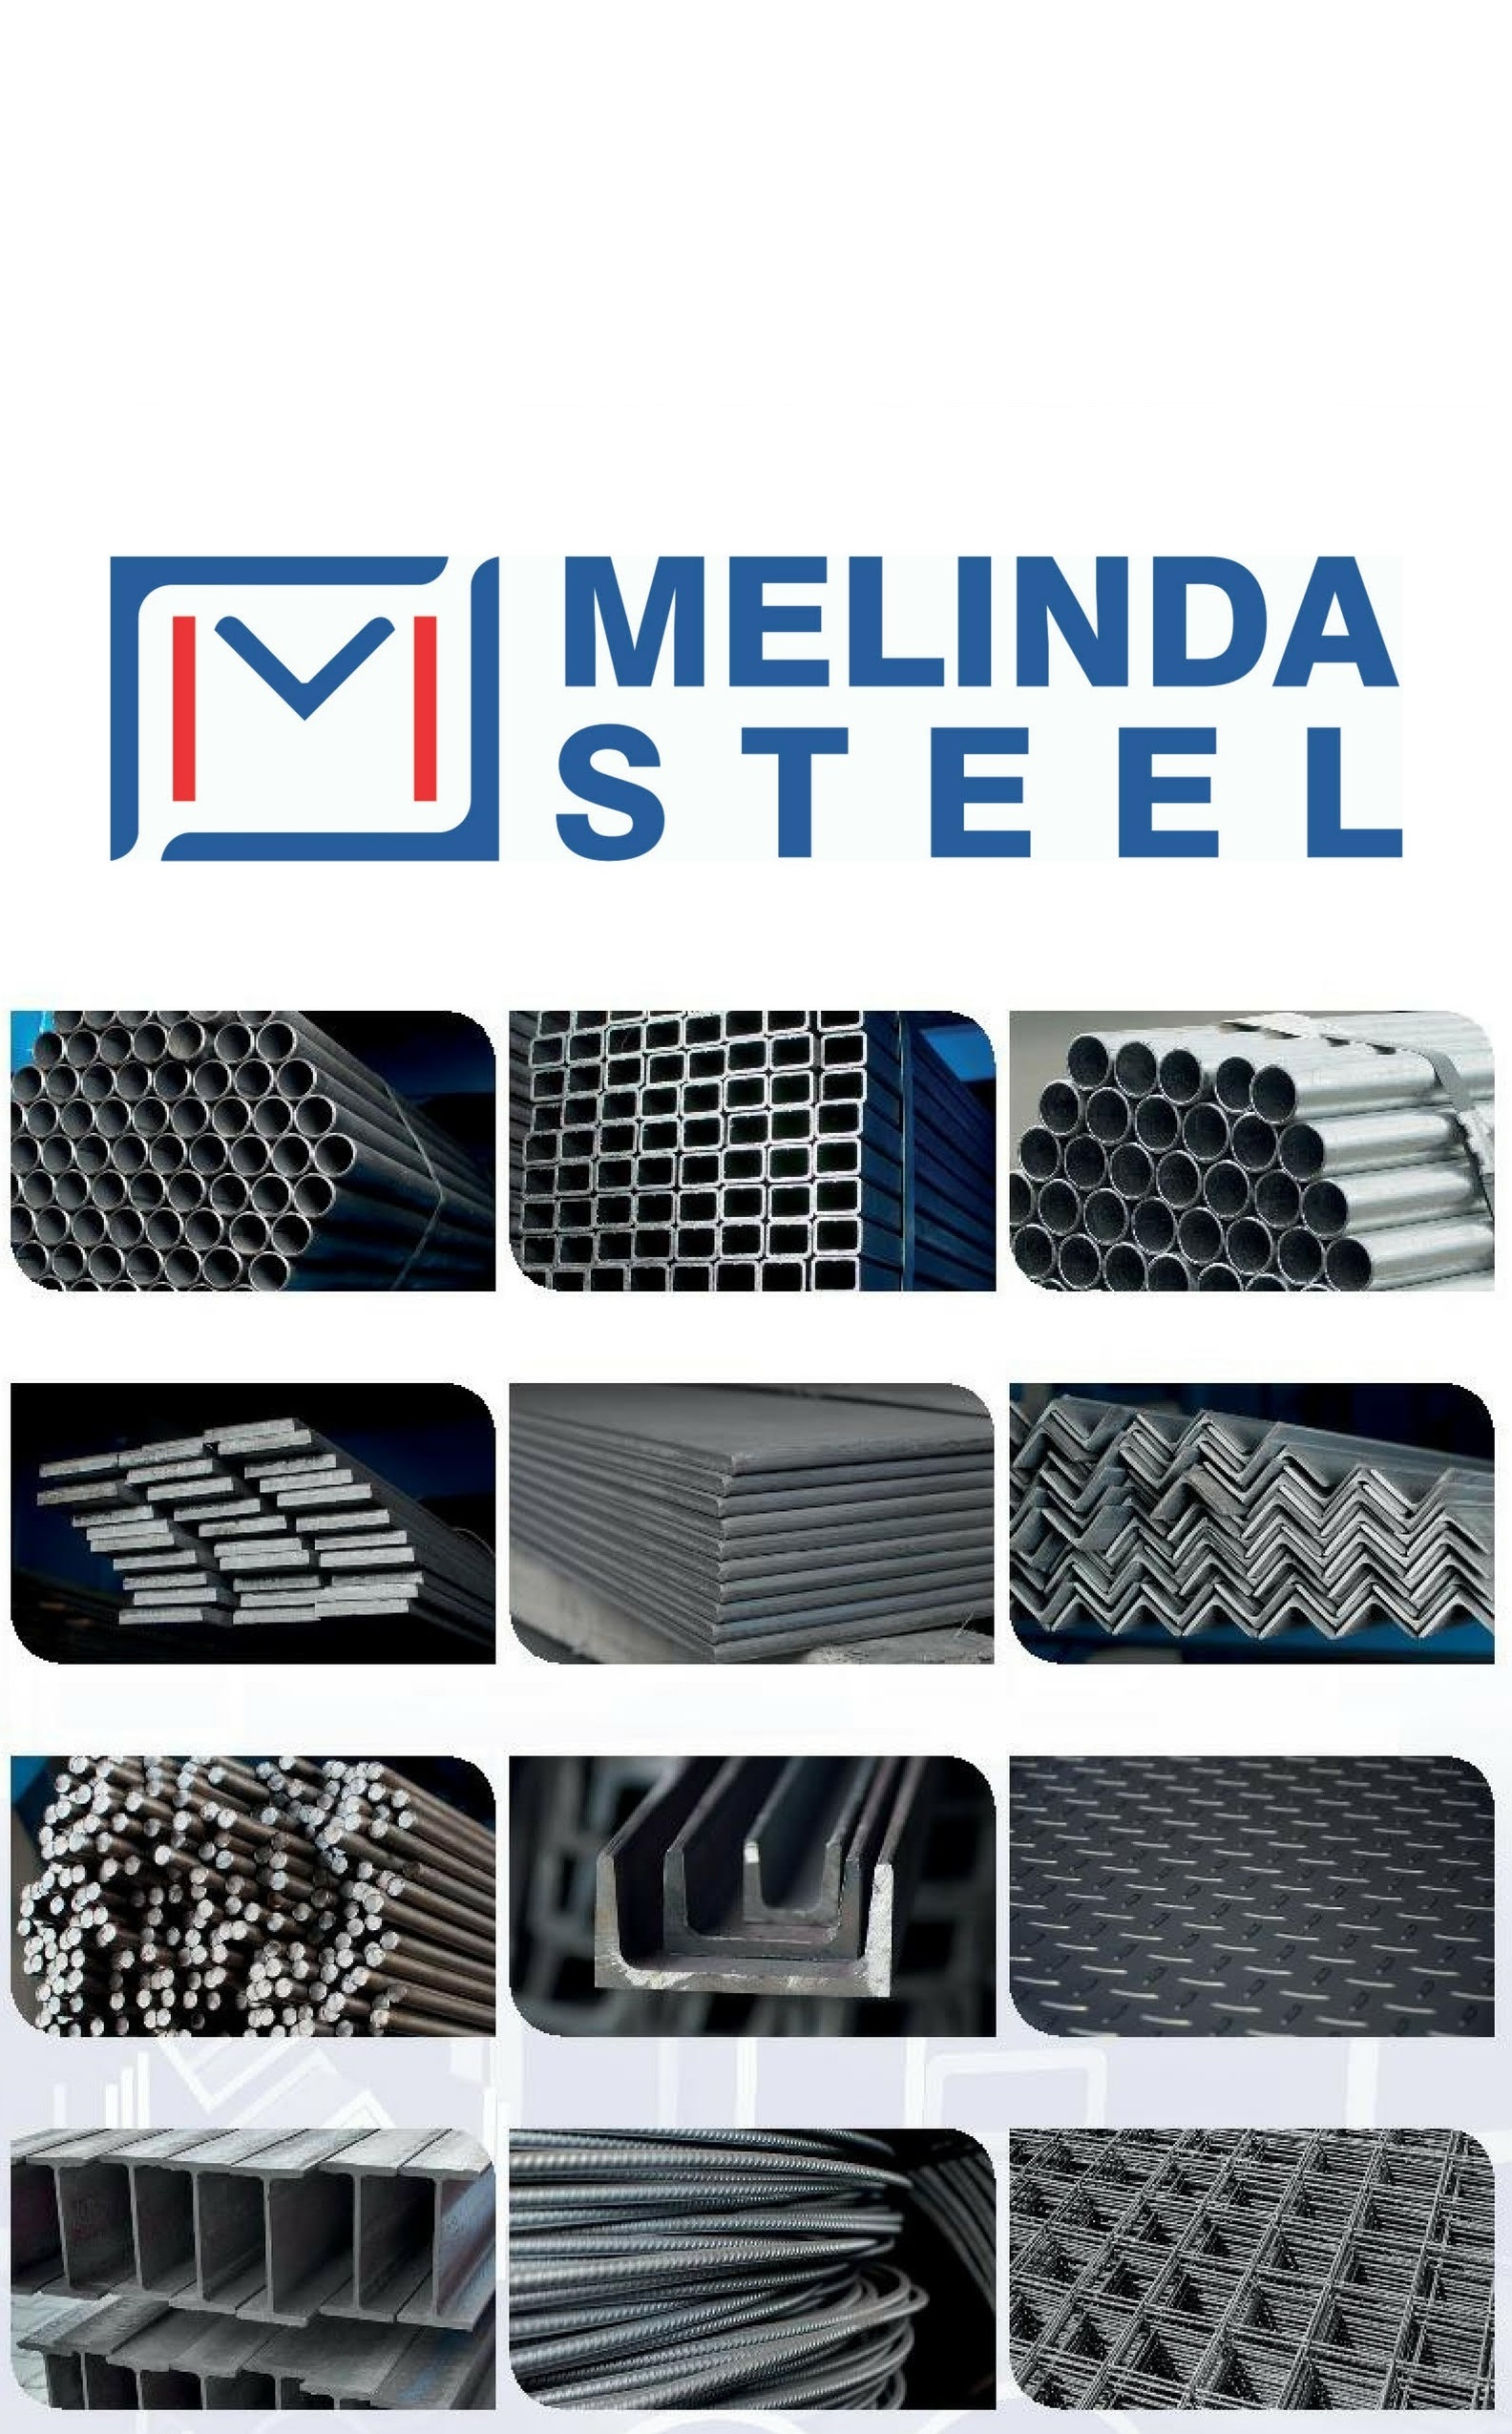 Melinda Steel, specialists in steel